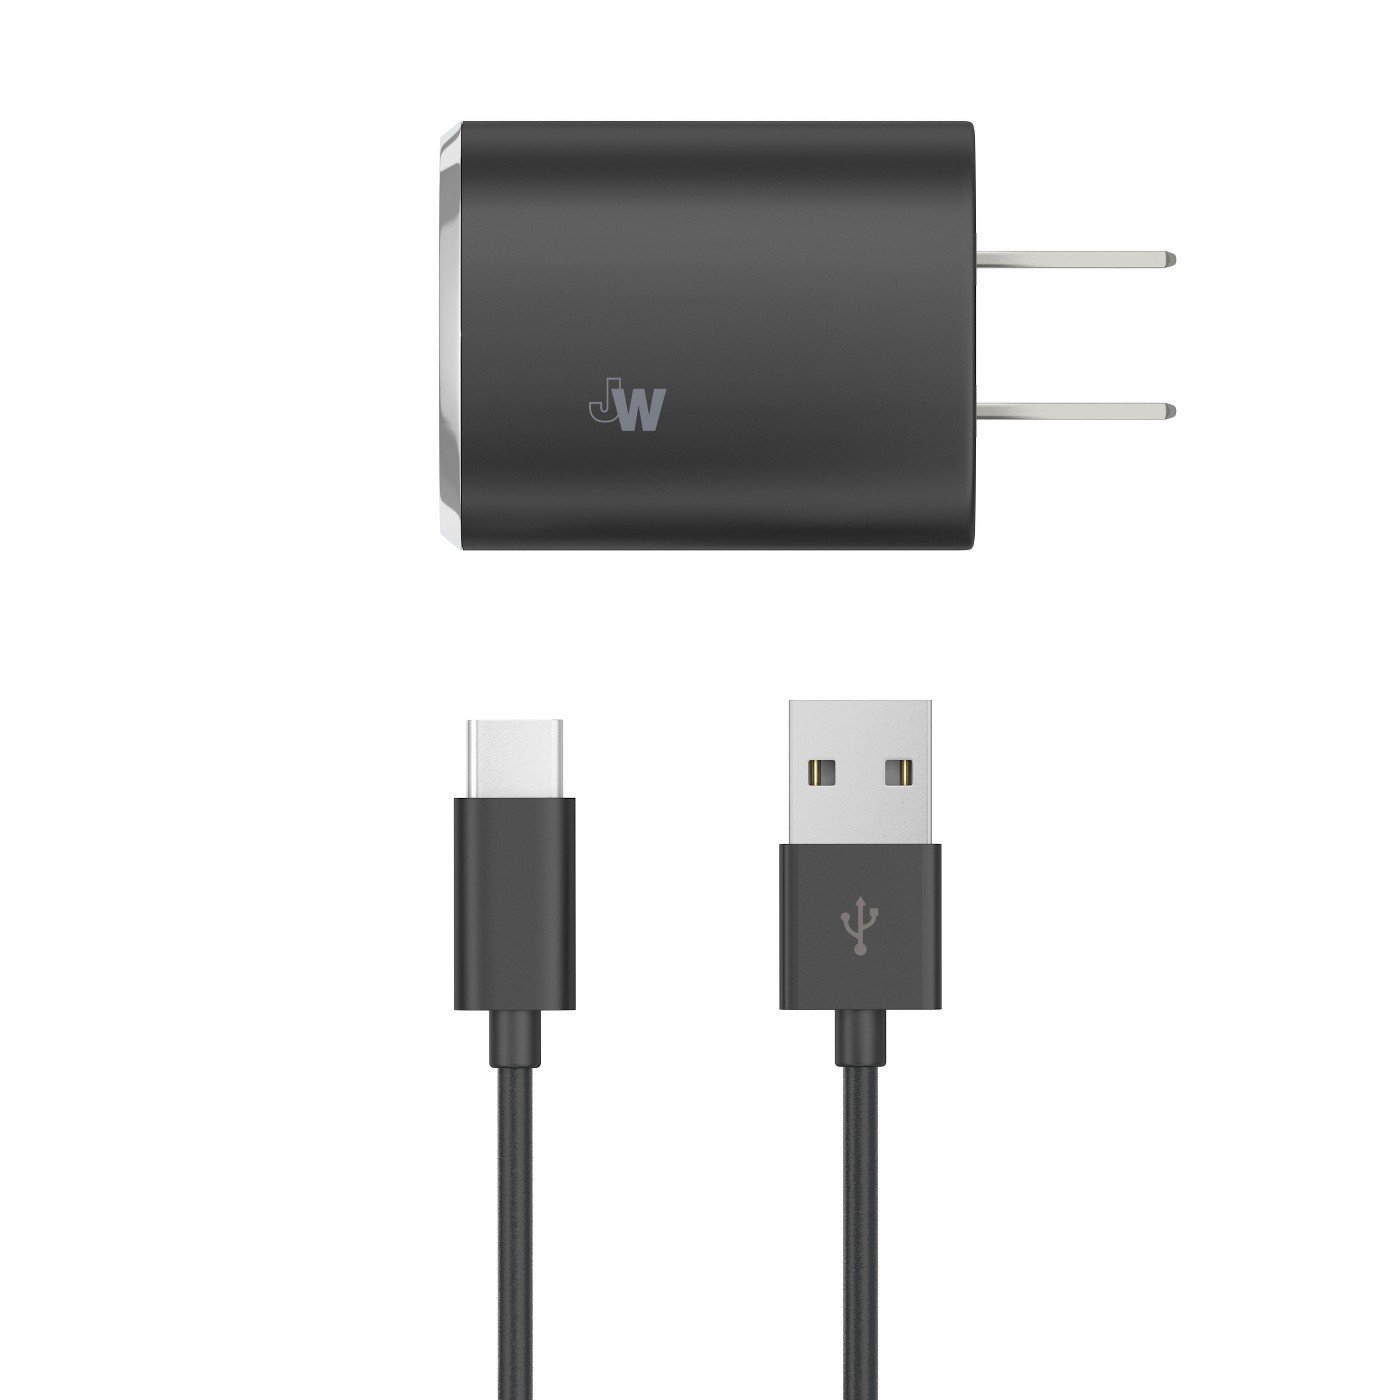 Home Charger USB Type-C Black - Just Wireless